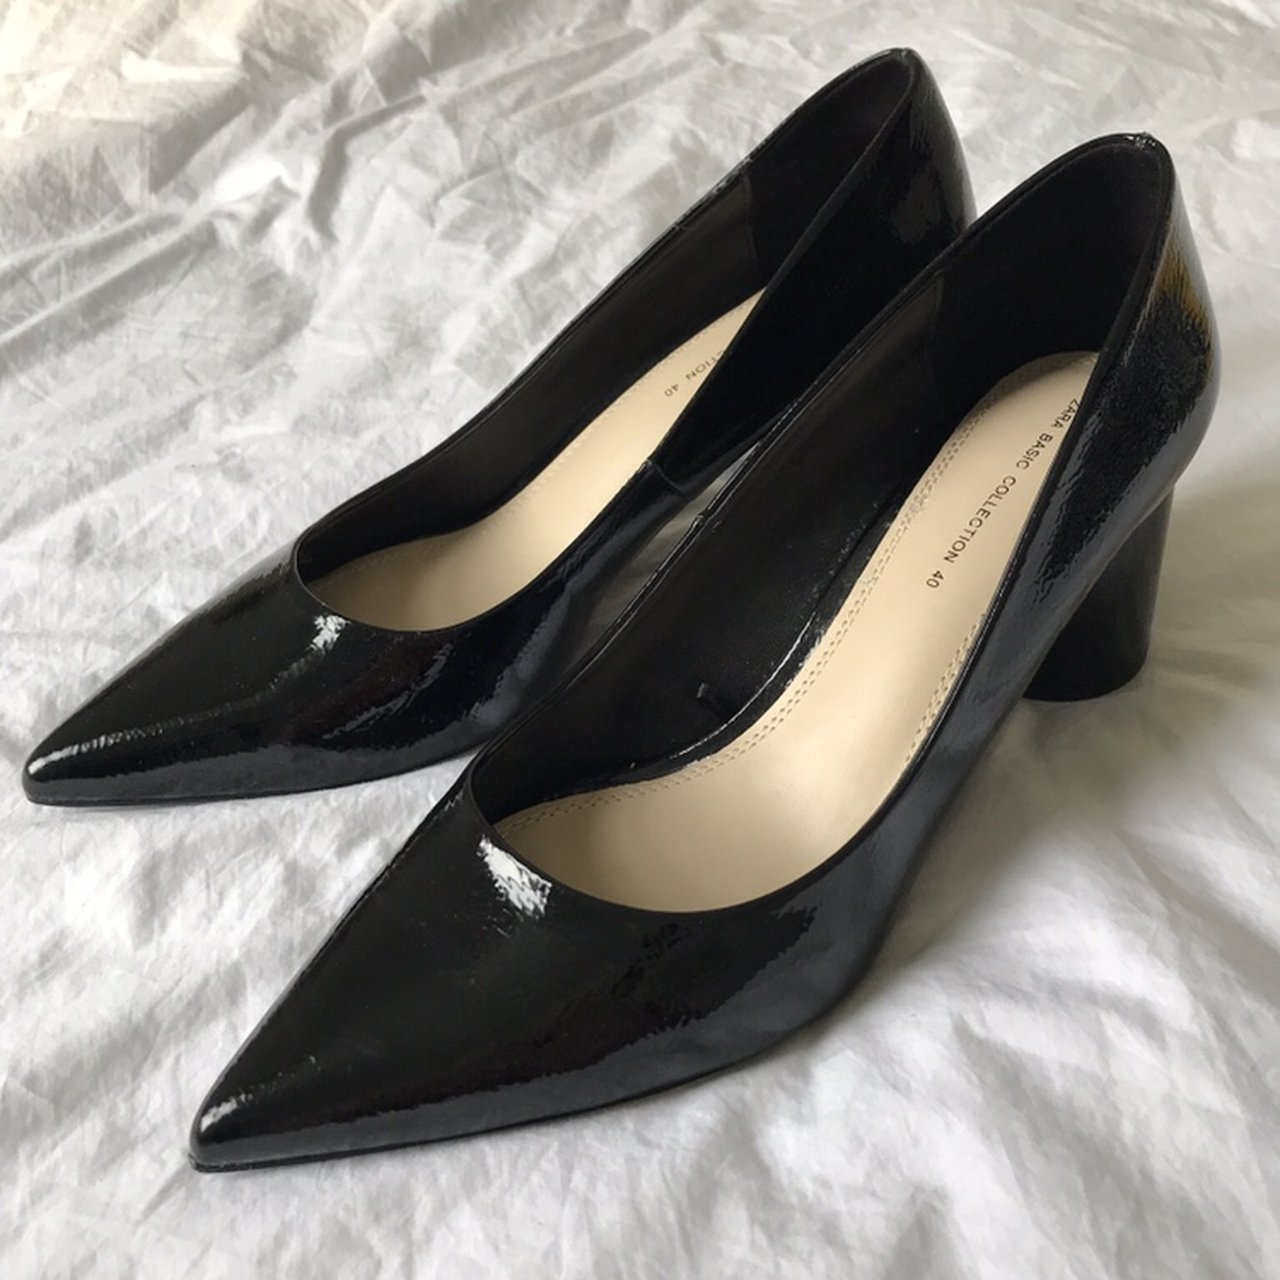 ee0b8fb58d5 Zara black patent pointed chunky heel shoes Size 7 Never - Depop